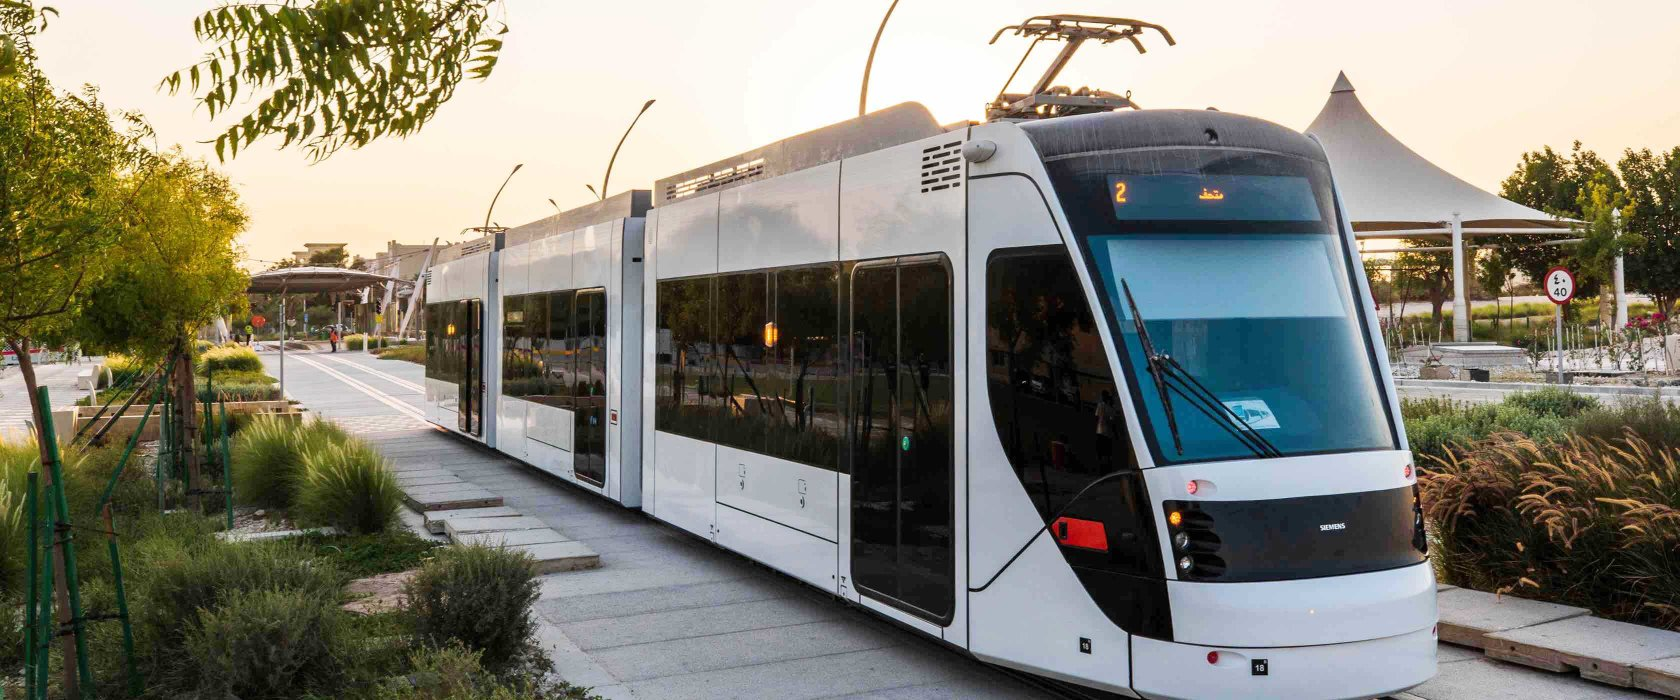 QF's Education City Tram offers students real-world learning opportunities in STEM